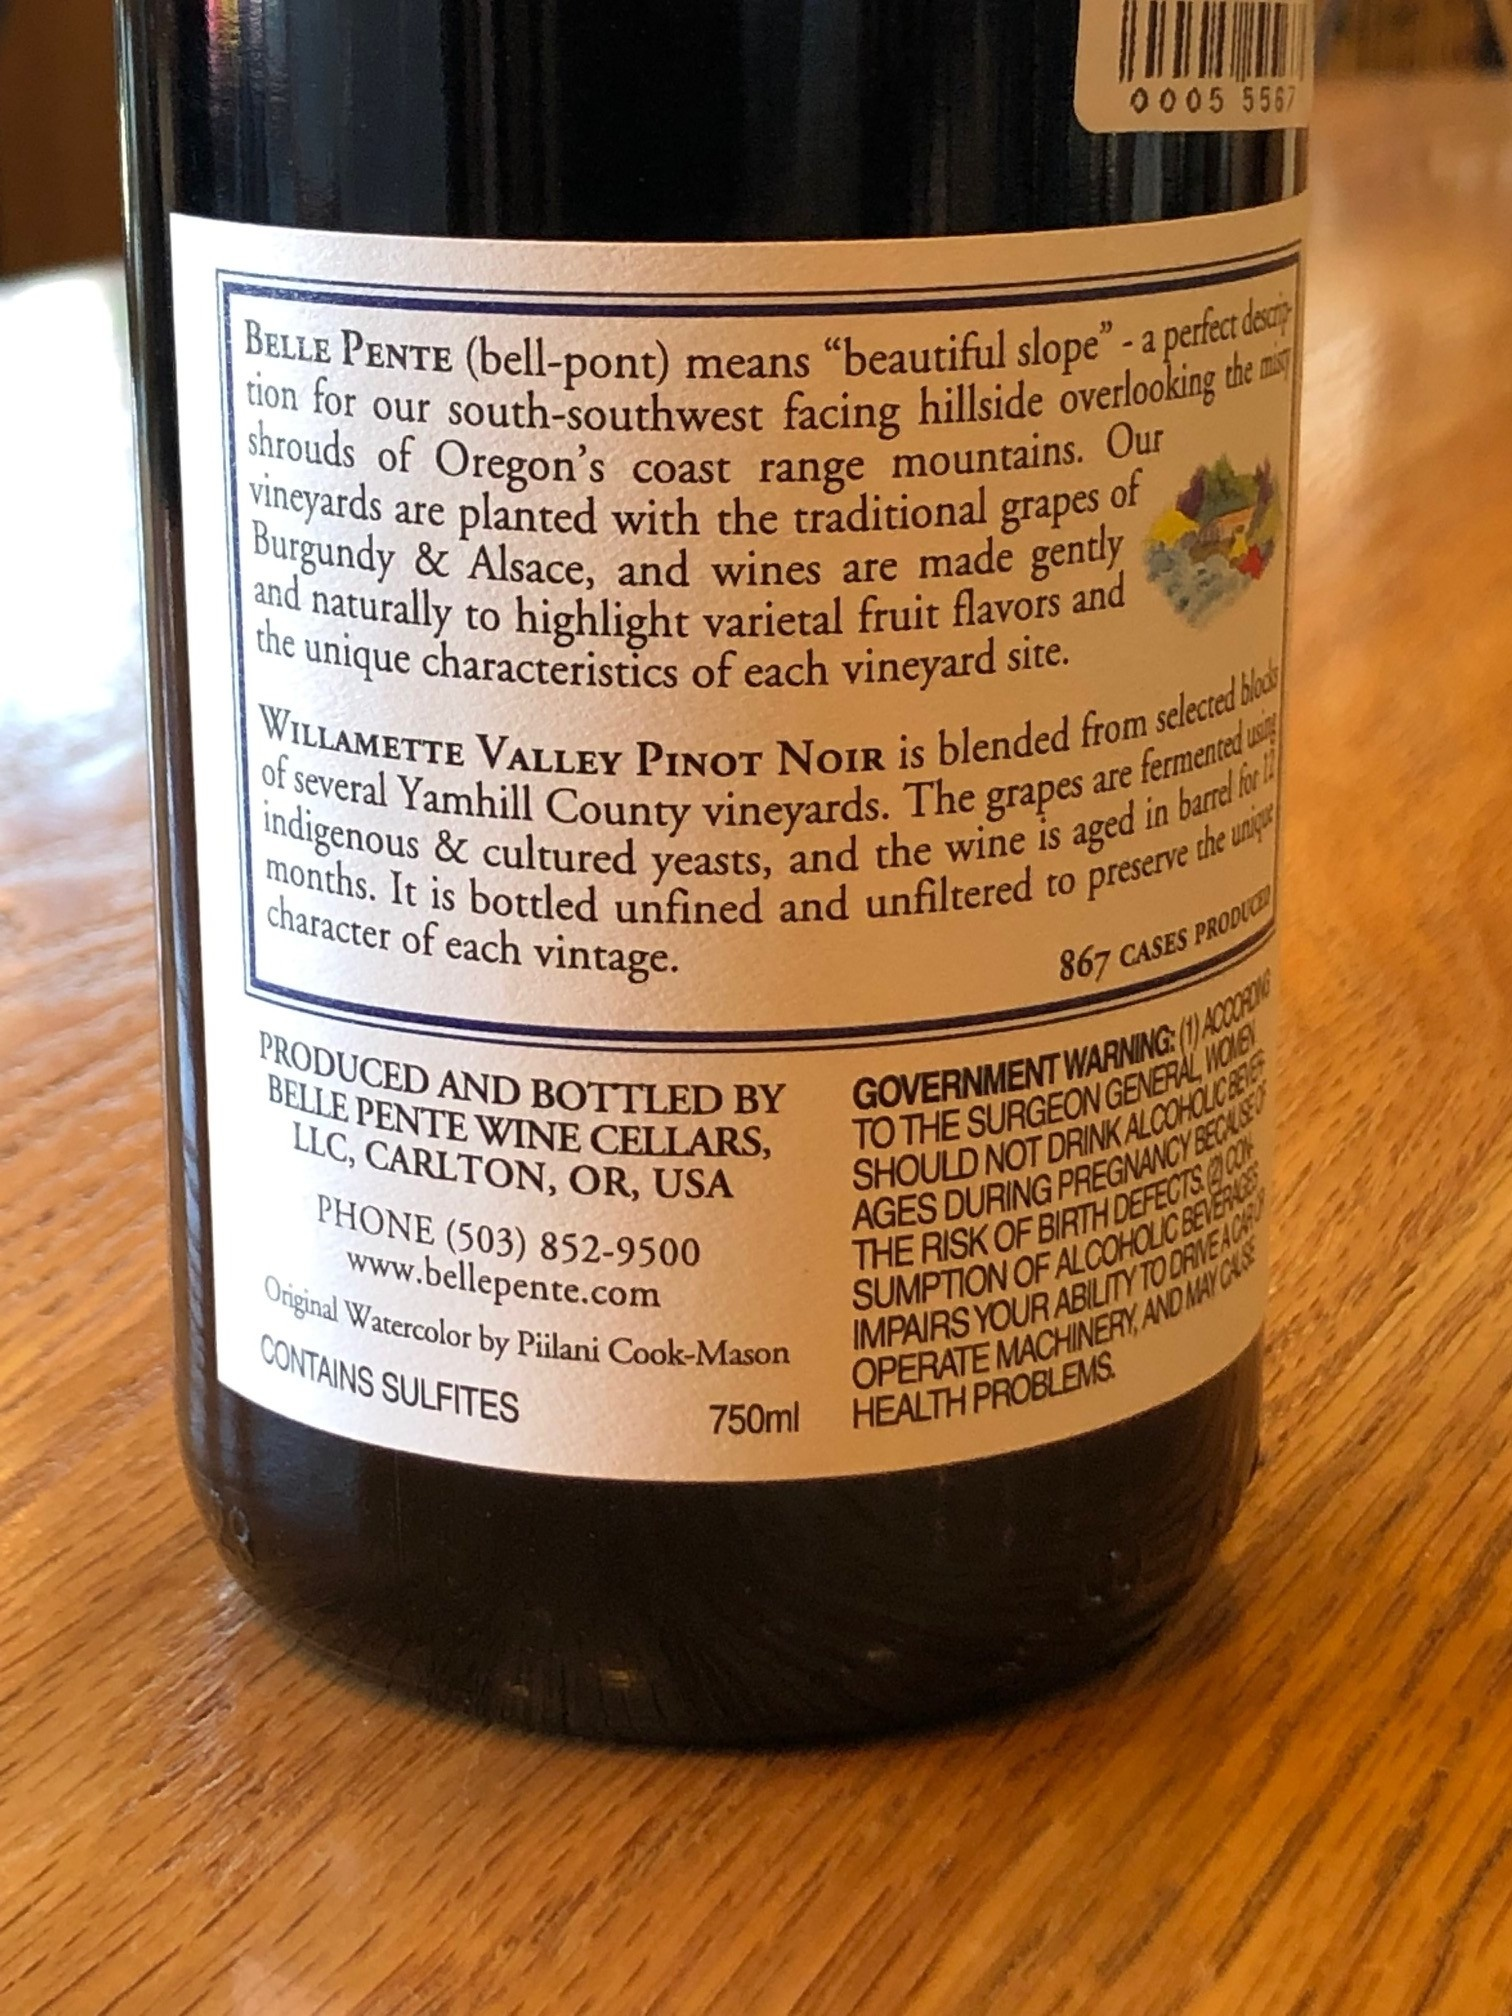 Belle Pente 2016 Belle Pente Willamette Valley Pinot Noir 750ml